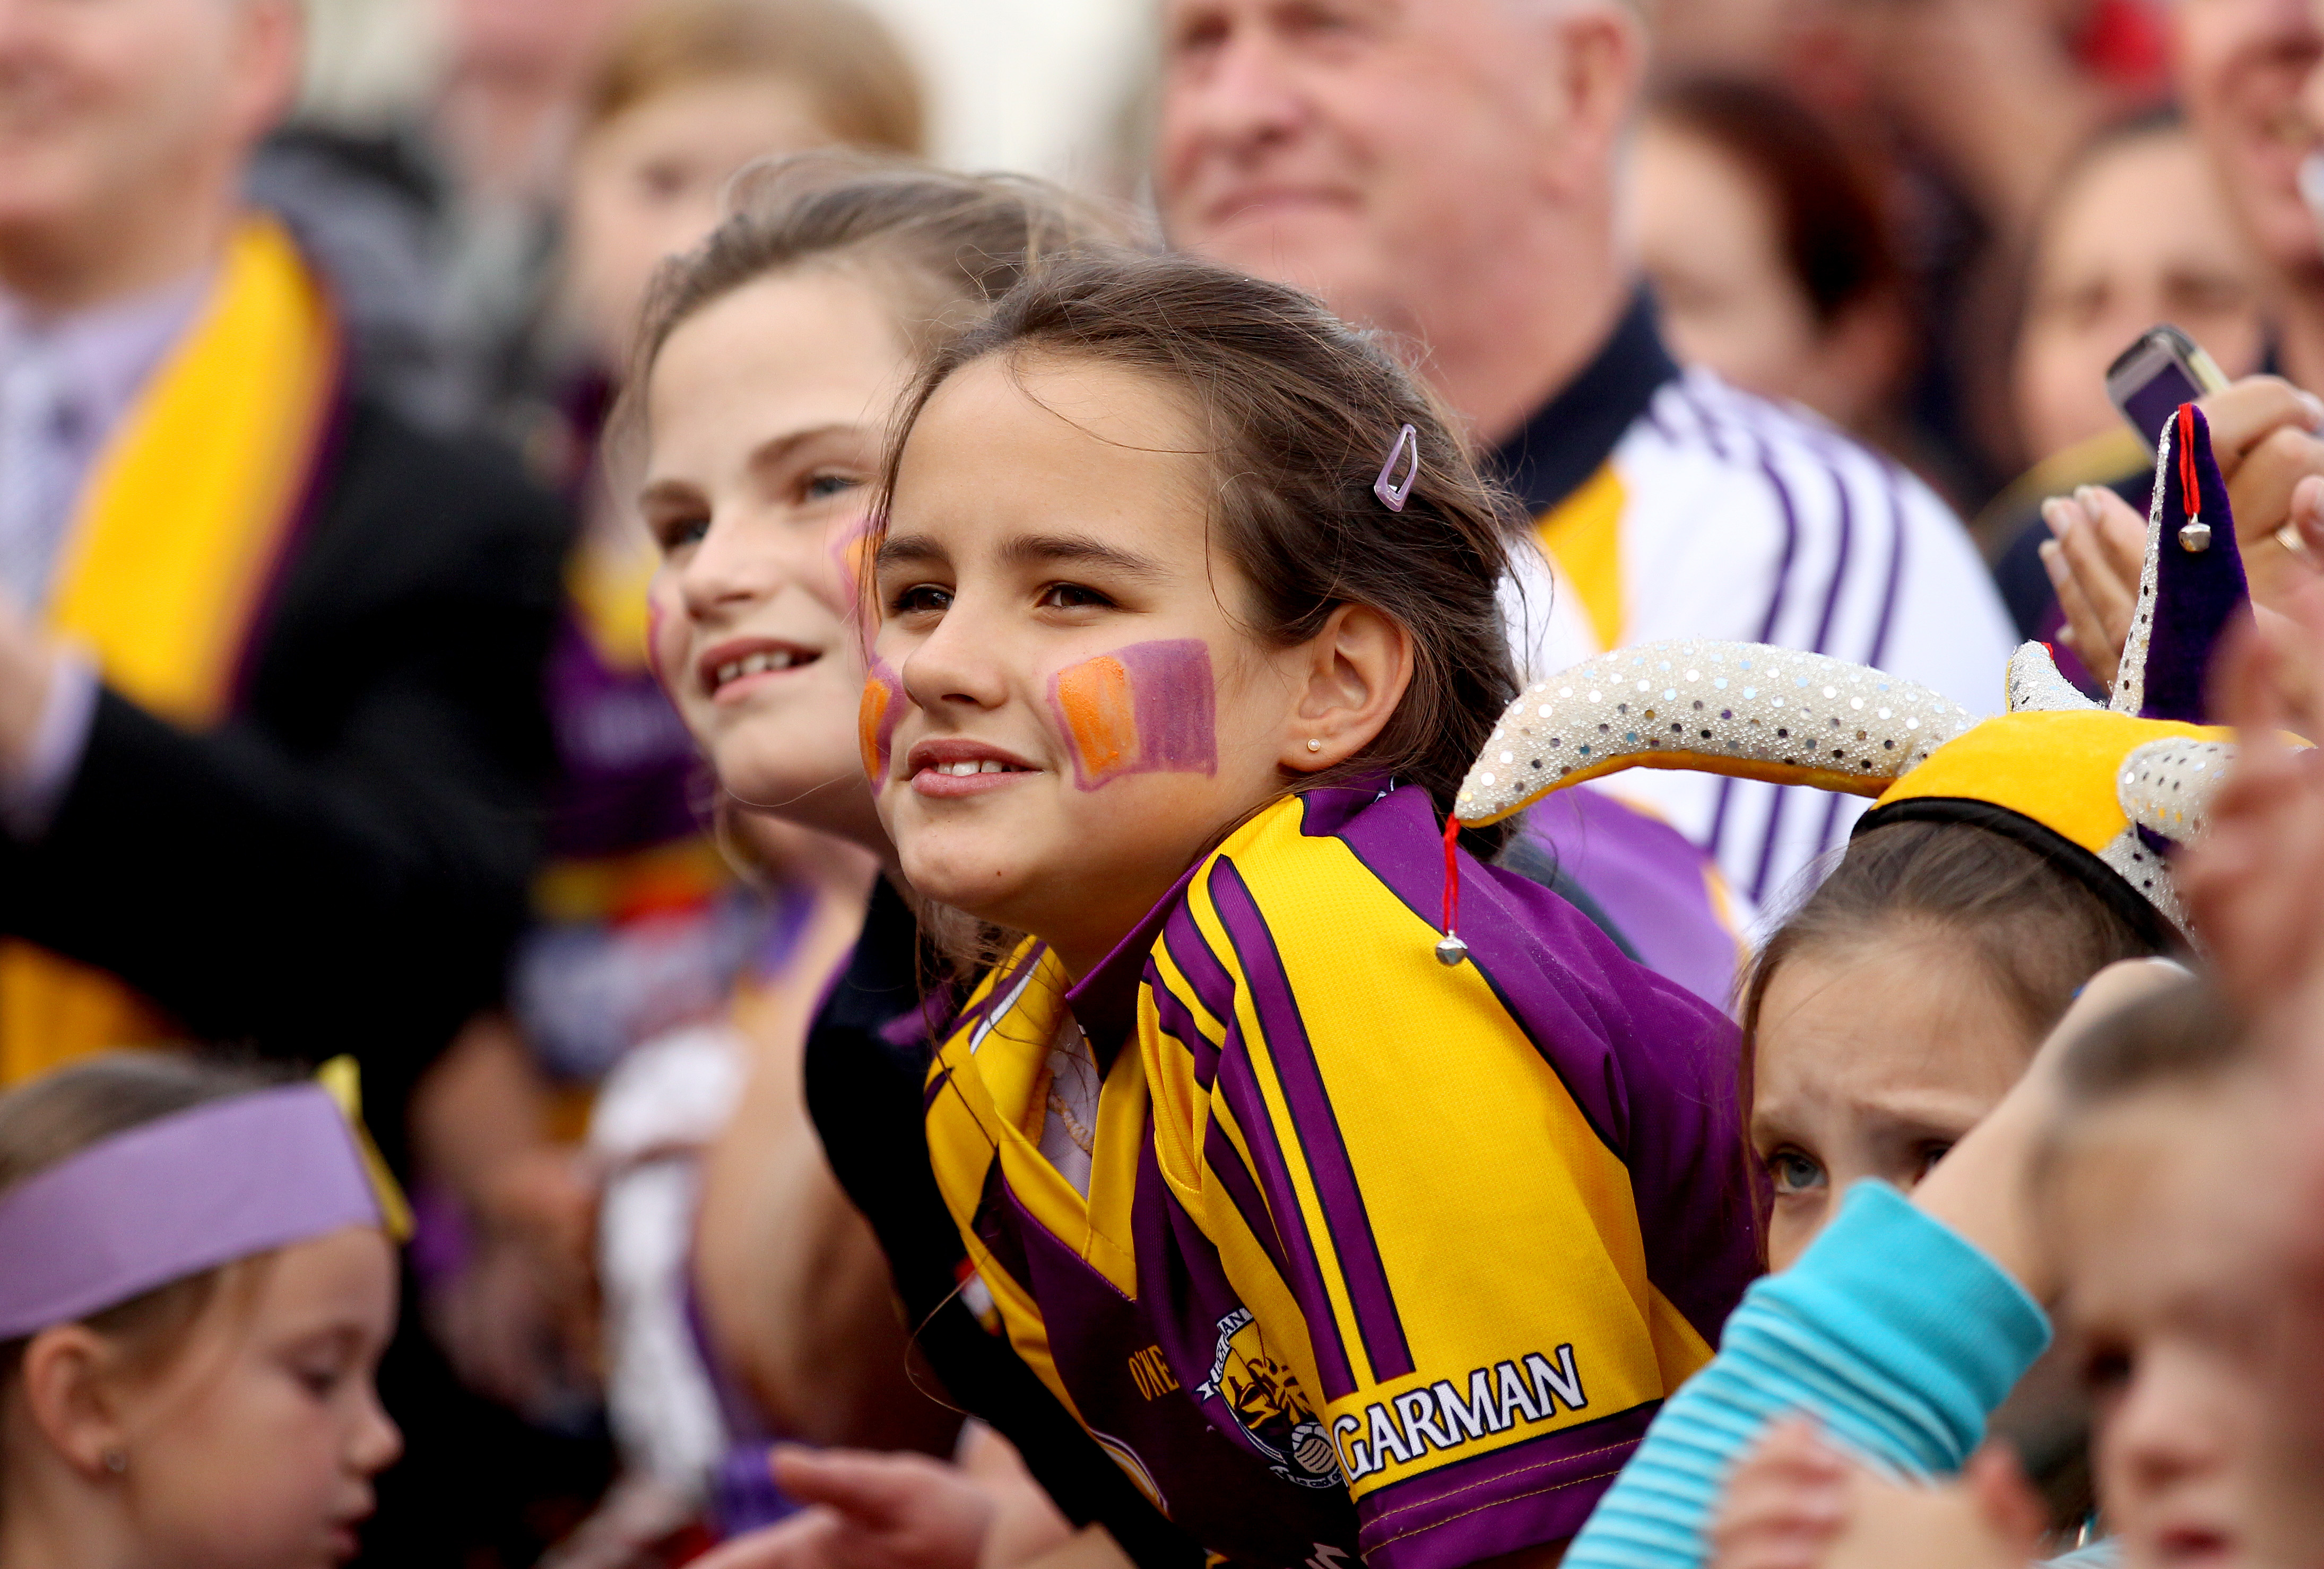 All Ireland Senior Camoige Champions Wexford Homecoming, Gorey, Wecford, 17/9/2012 A young Wexford fan Mandatory Credit ©INPHO/Ryan Byrne